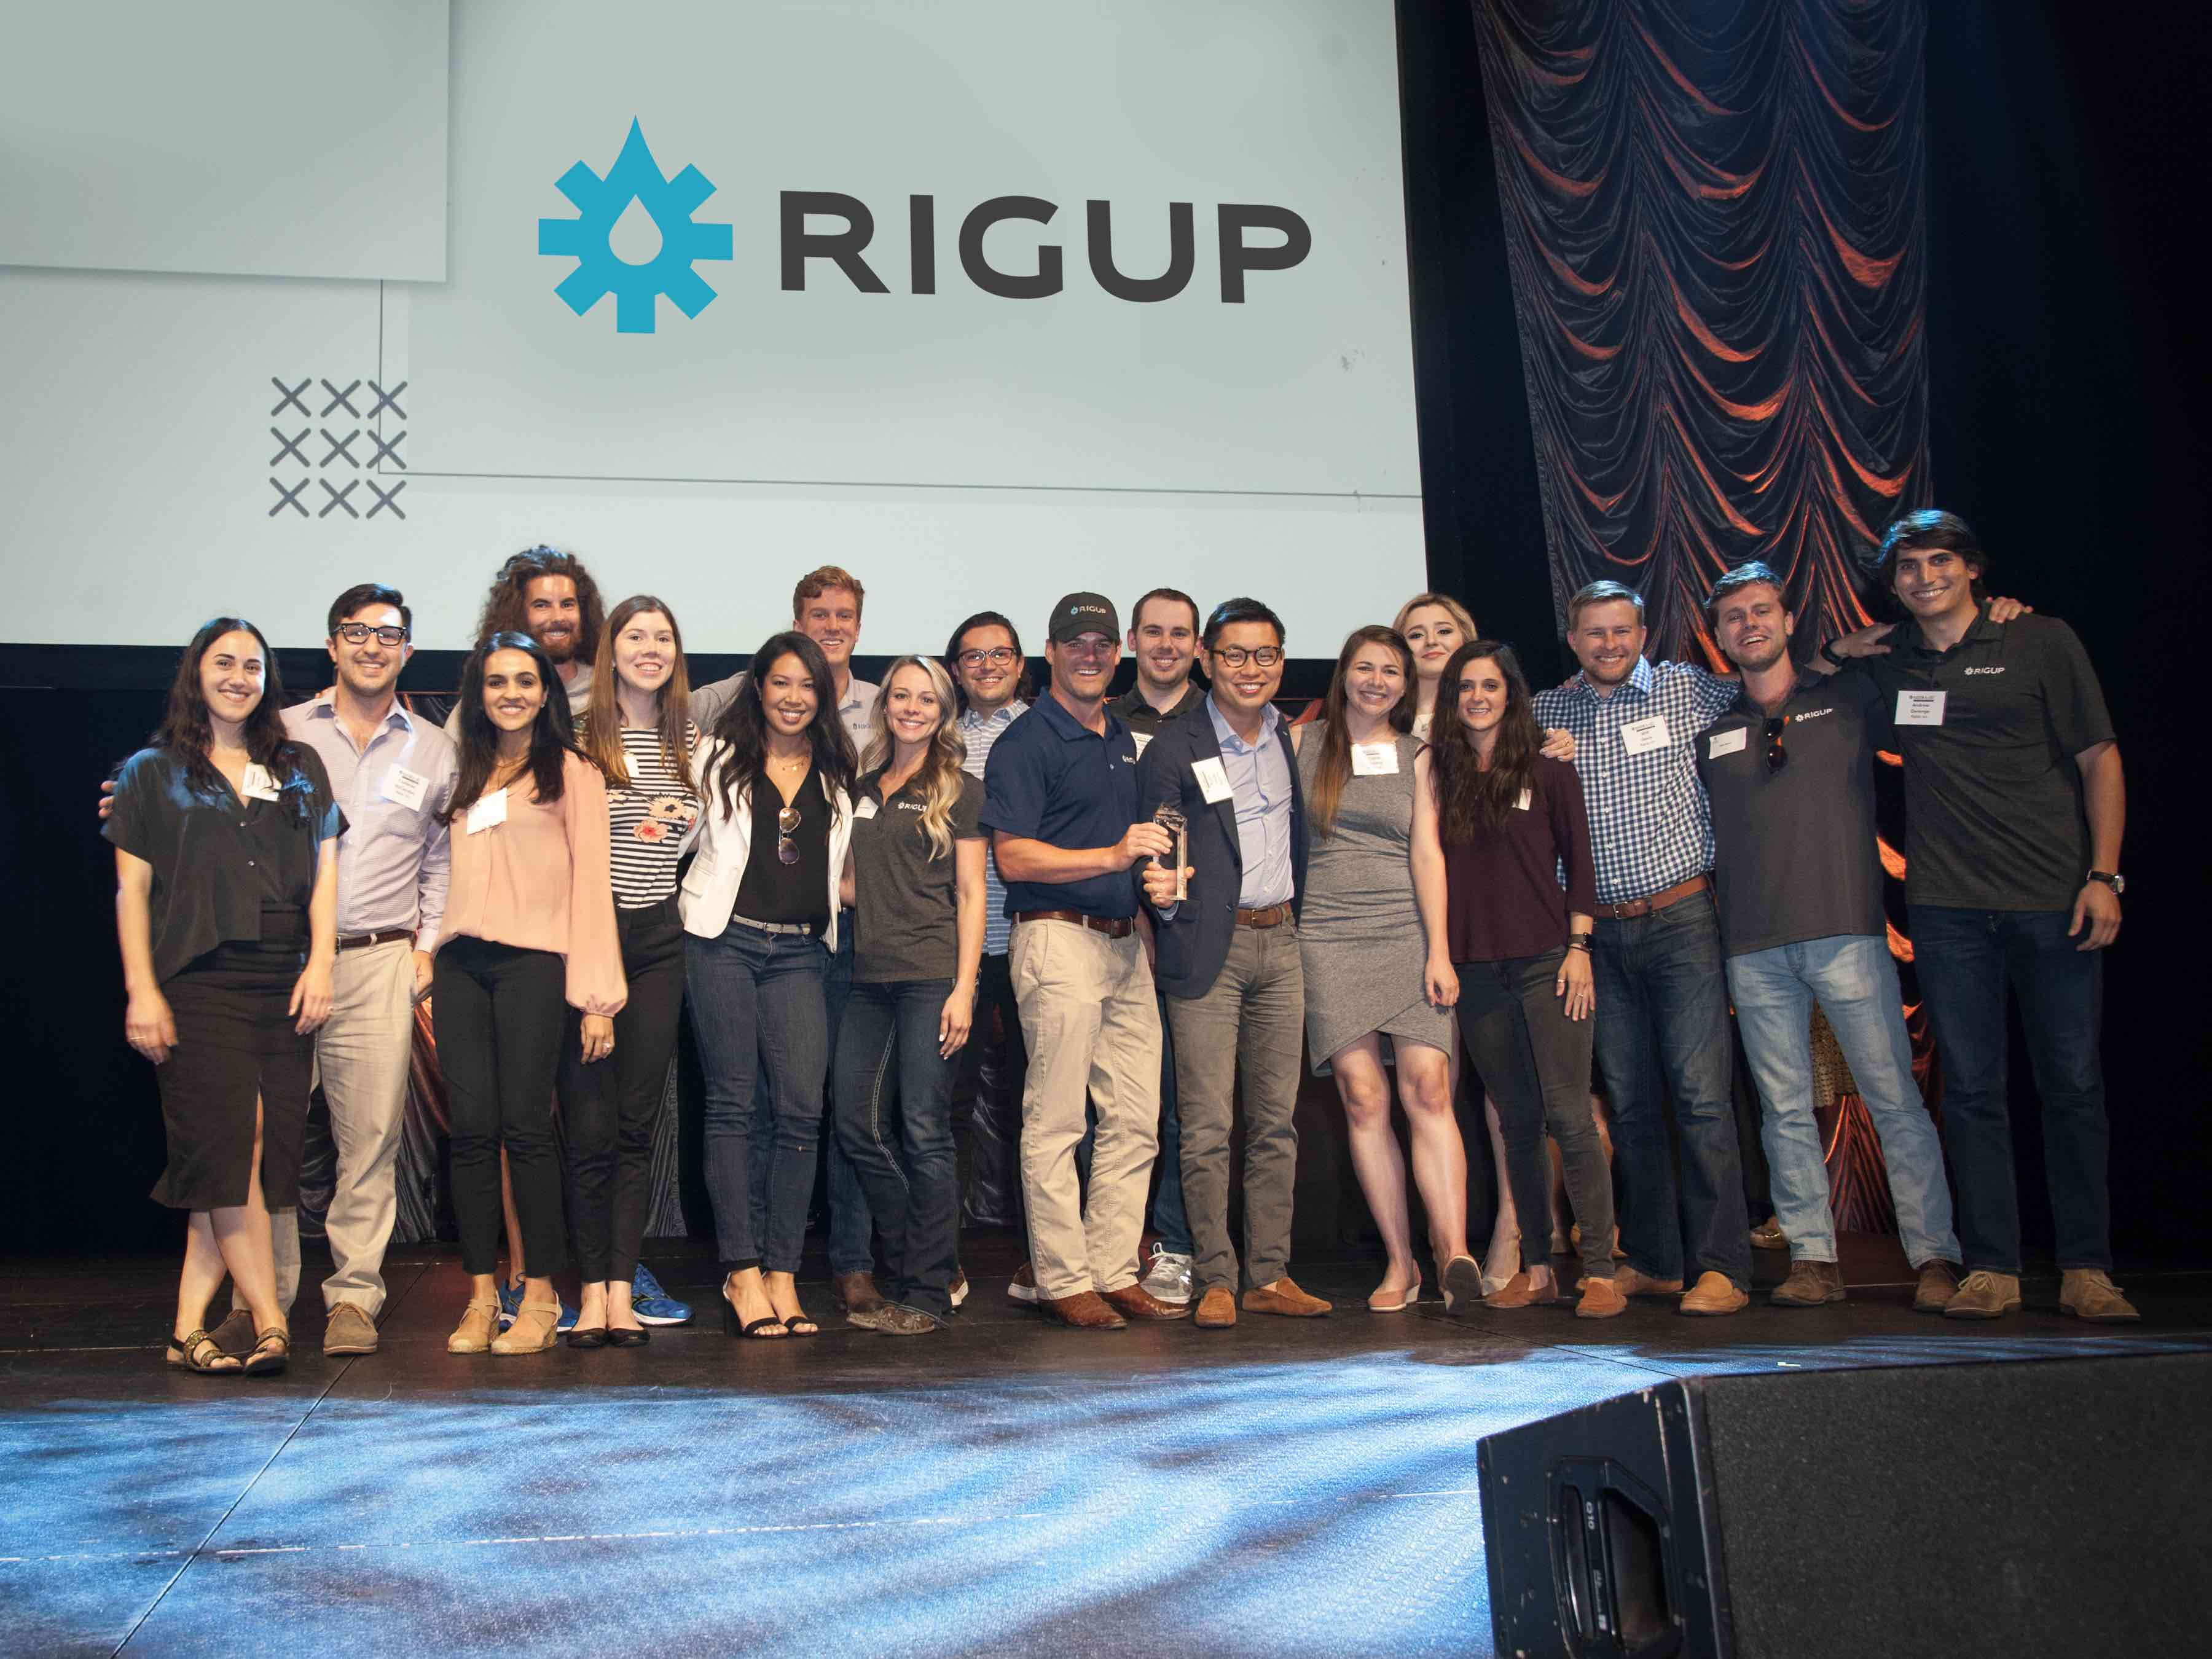 New unicorn in Texas as energy marketplace startup RigUp raises $300M